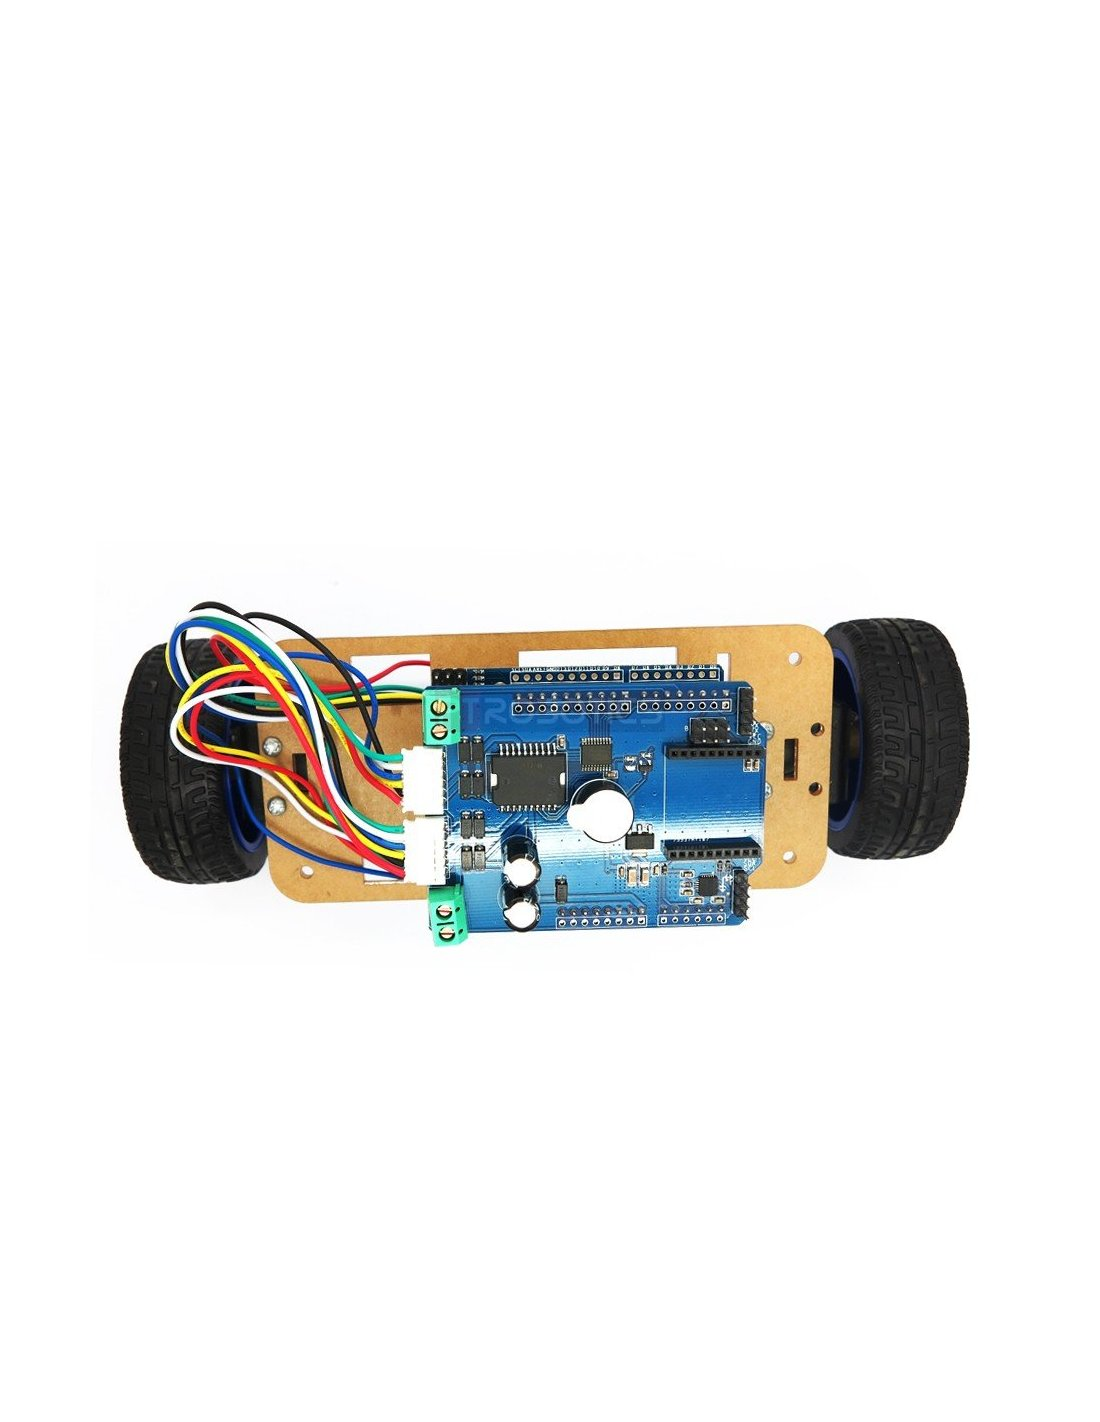 Wheel self balancing upright rover car arduino robot